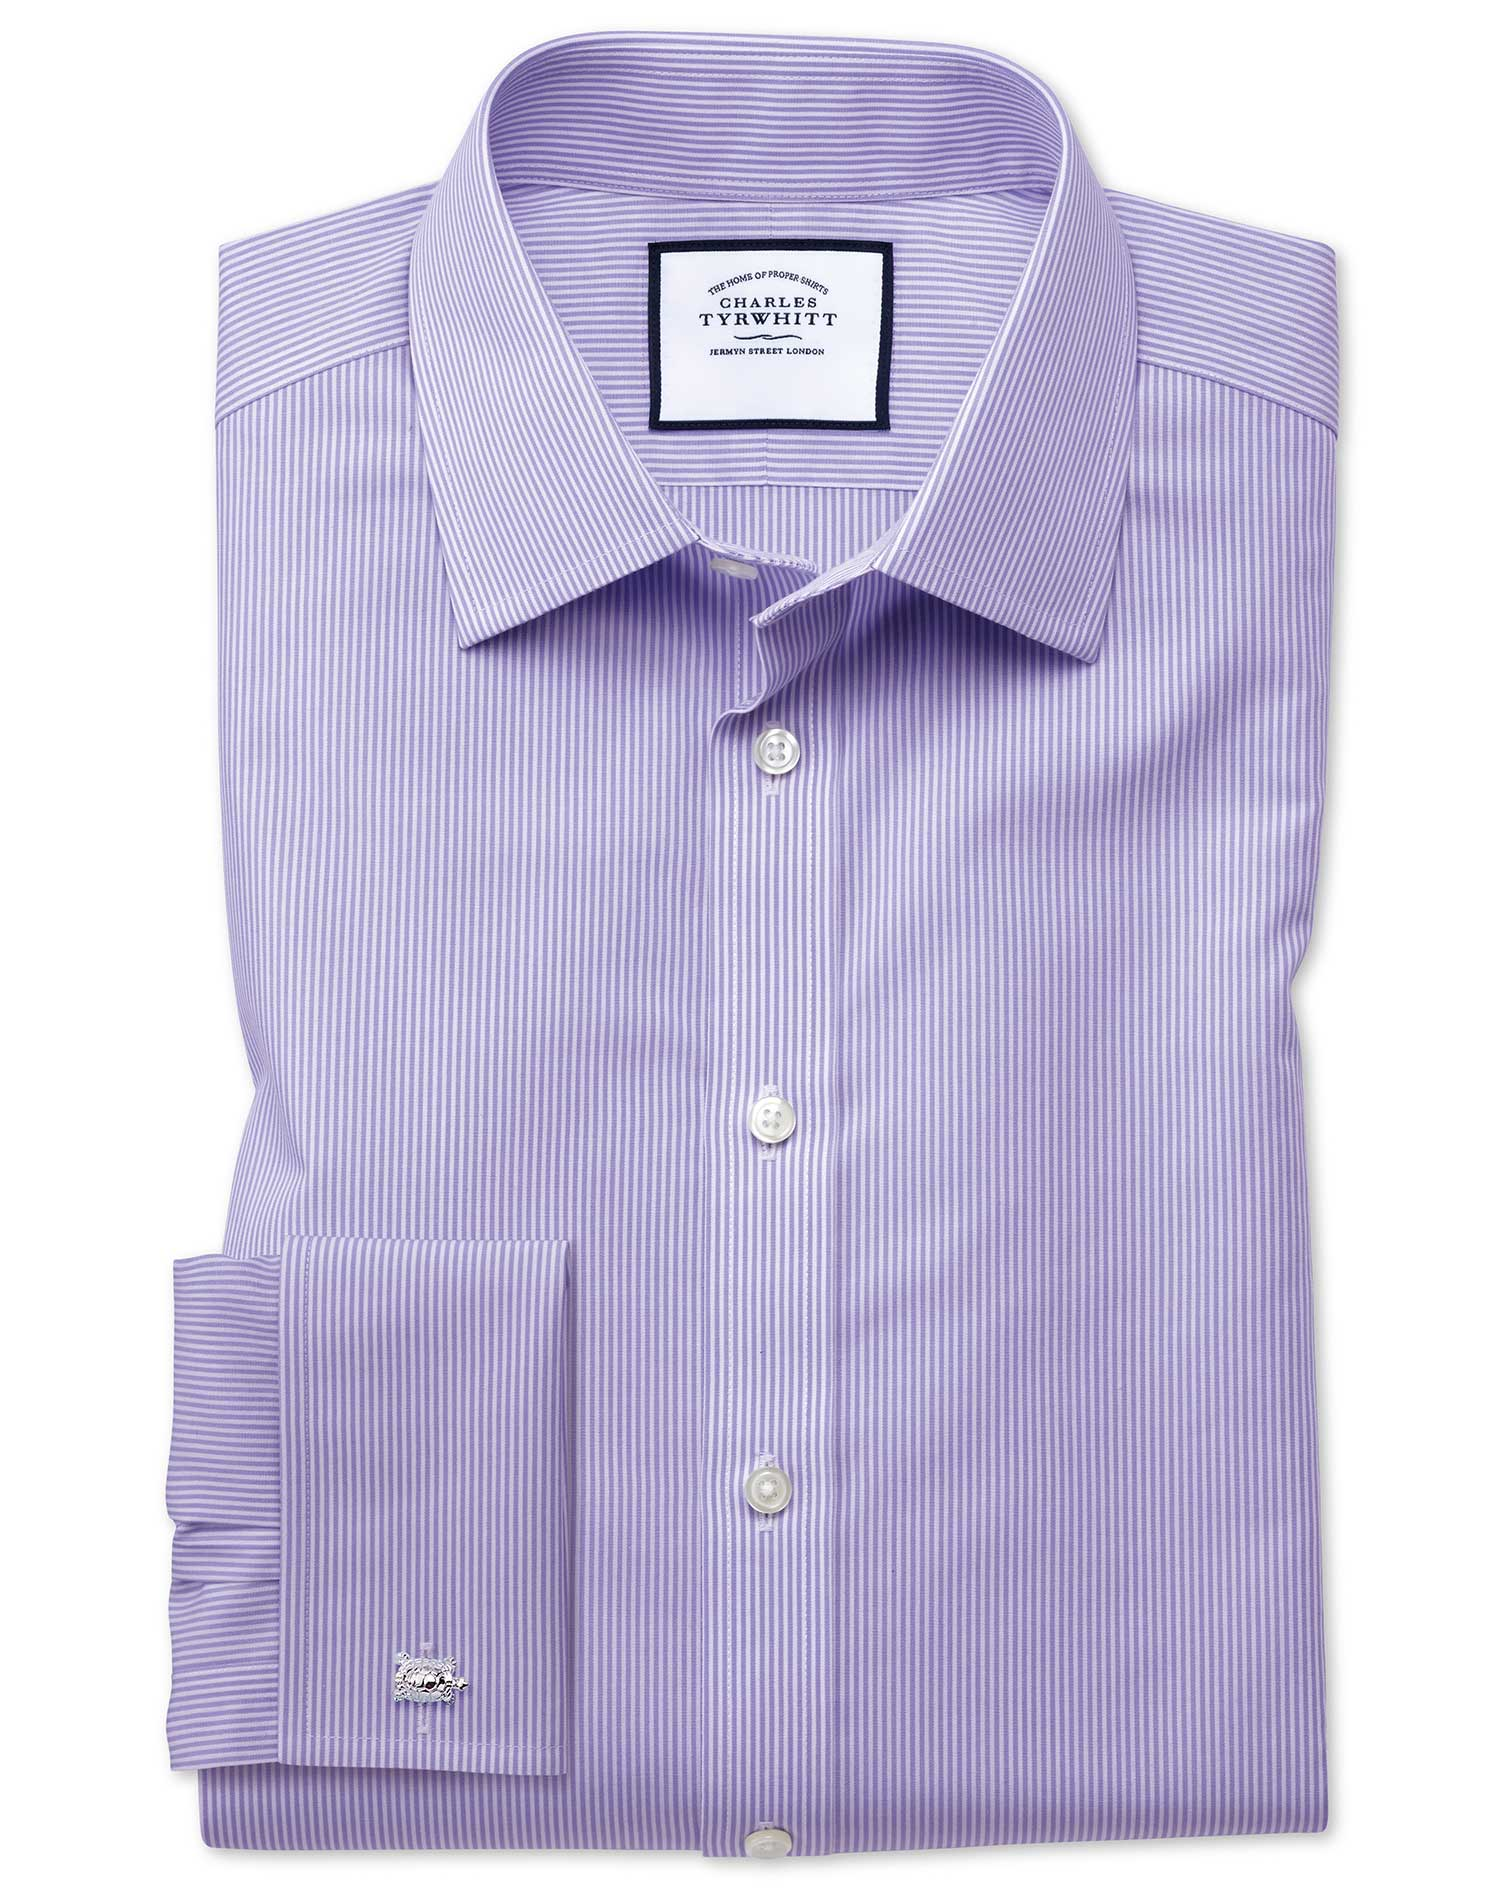 Slim Fit Non-Iron Bengal Stripe Lilac Cotton Formal Shirt Single Cuff Size 16/36 by Charles Tyrwhitt